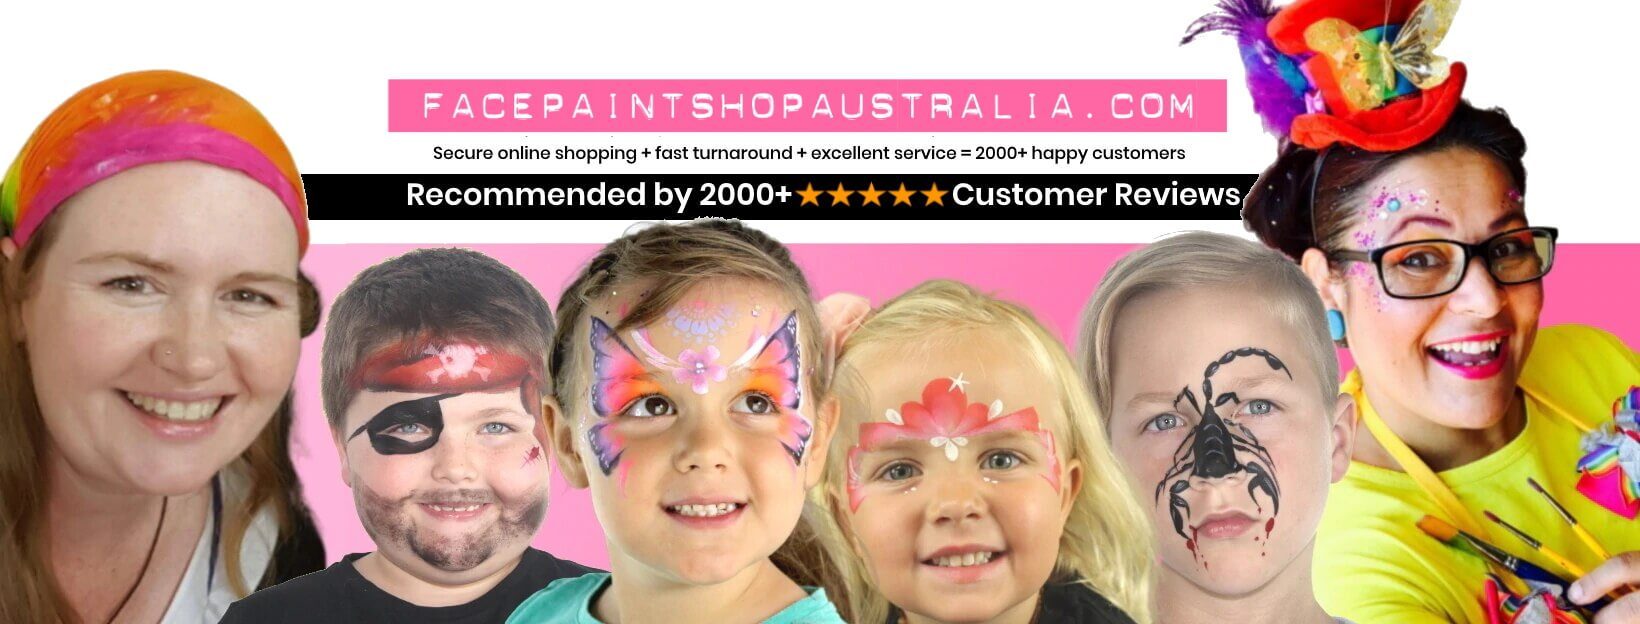 face paint shop australia home page banner